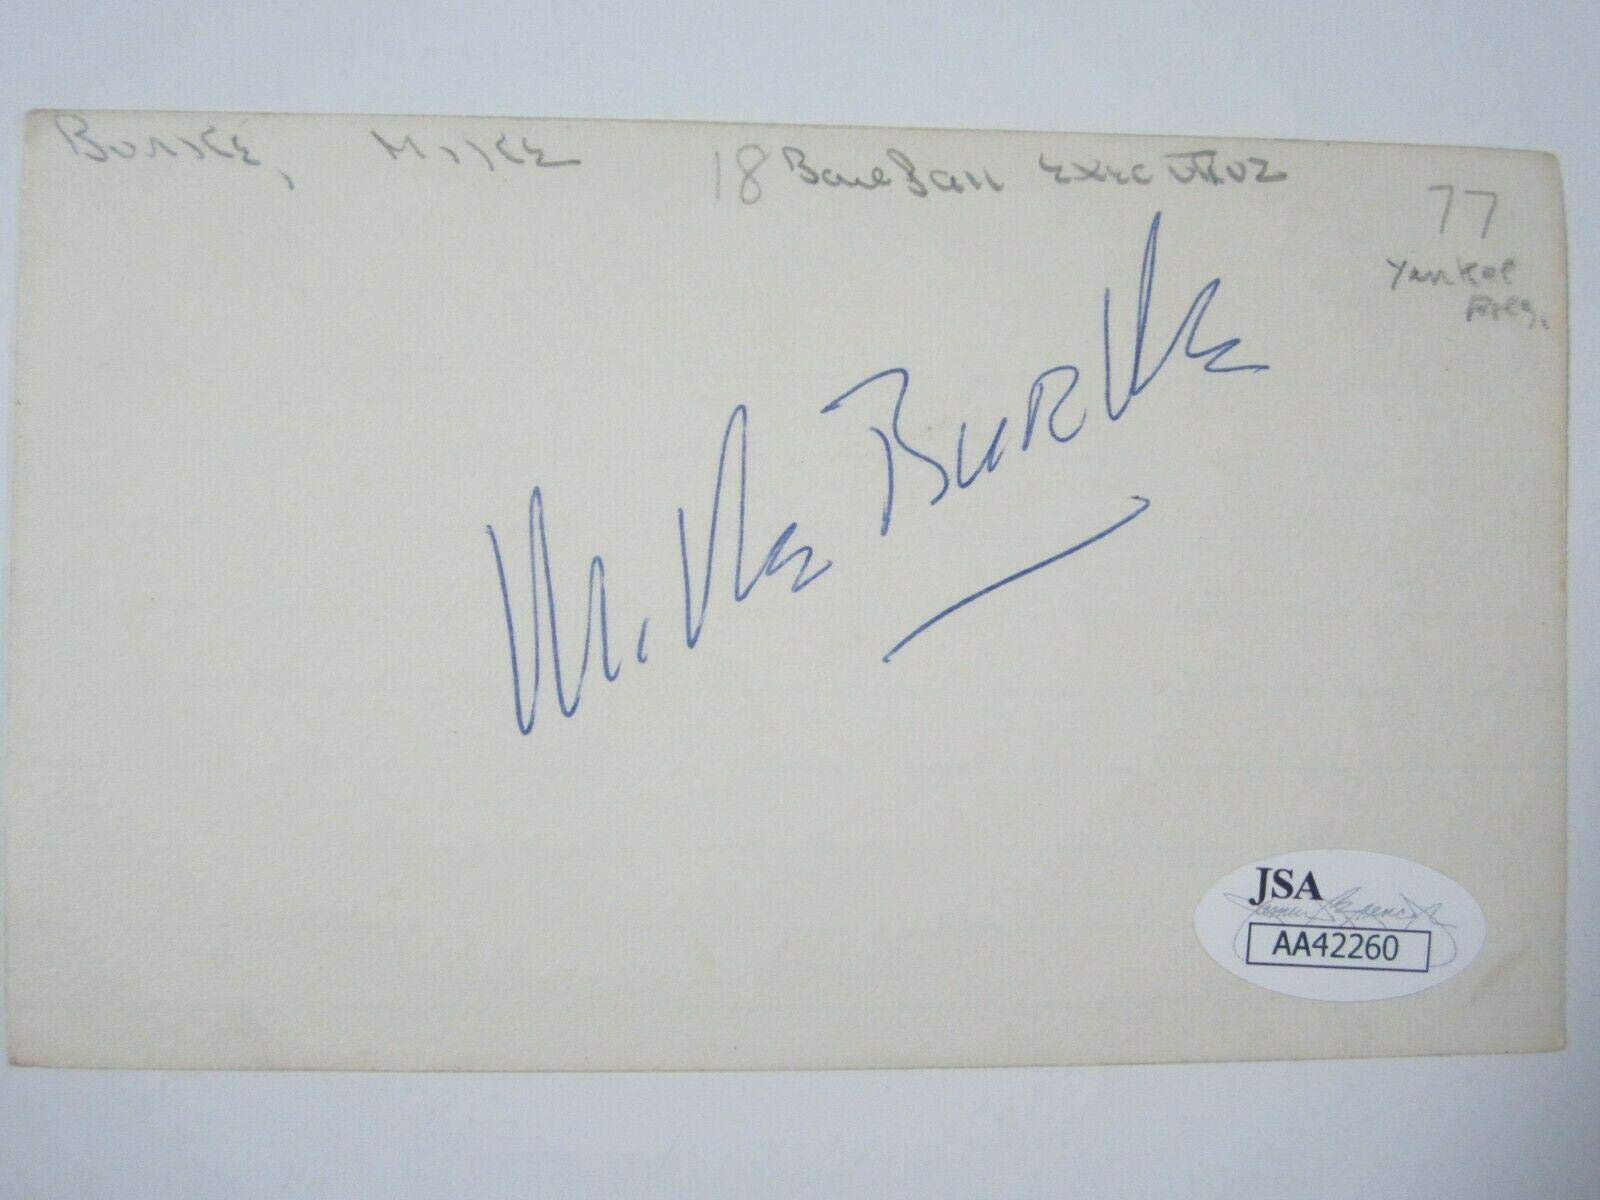 MIKE BURKE (NY Yankees President 1960 70s) Signed Autographed Index Card CoA JSA Certified MLB Cut Signatures